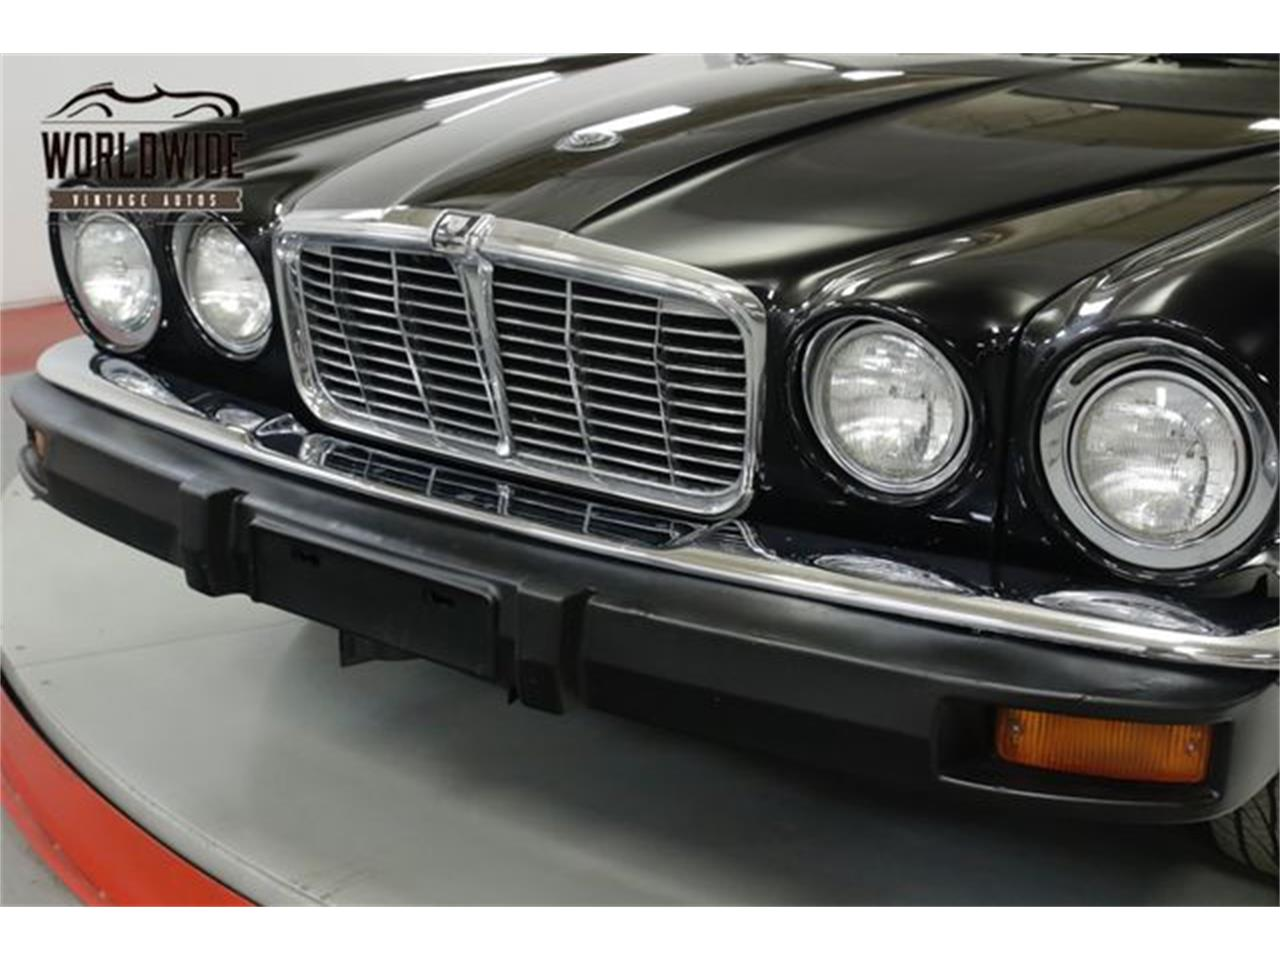 Large Picture of 1976 XJ6 located in Denver  Colorado Offered by Worldwide Vintage Autos - PSG5